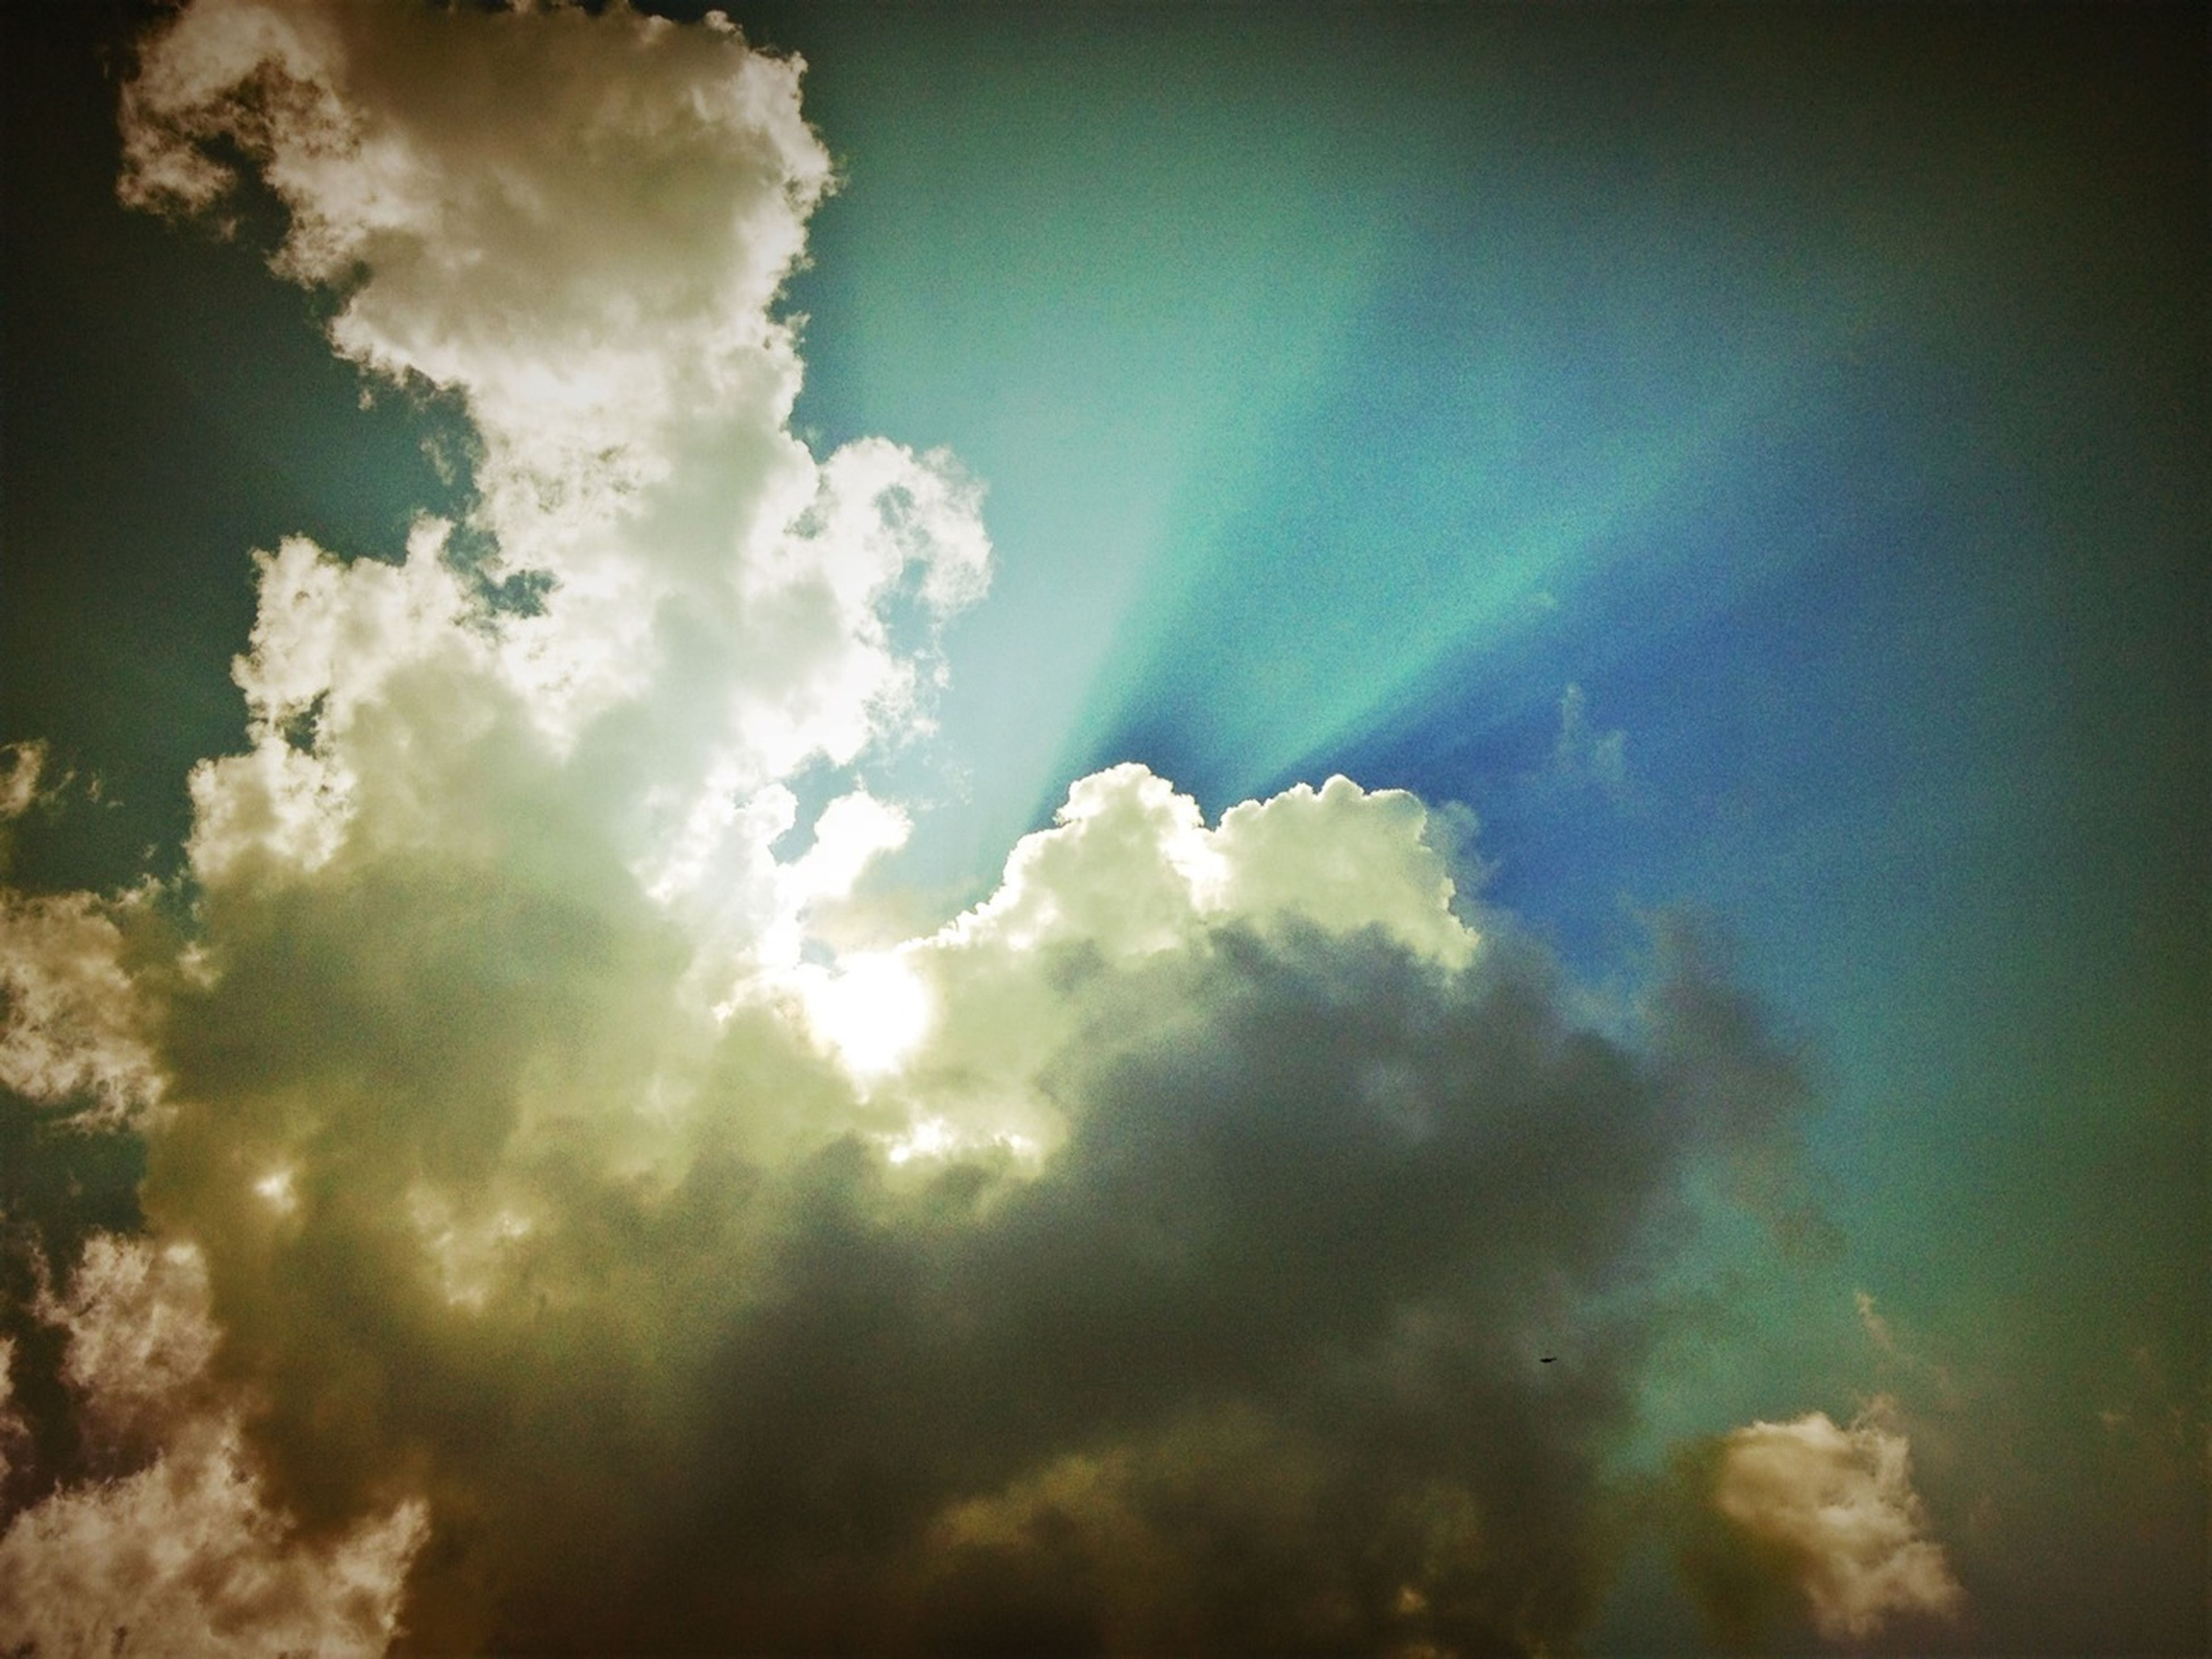 sky, low angle view, cloud - sky, sky only, beauty in nature, nature, cloudy, scenics, tranquility, cloud, cloudscape, blue, tranquil scene, backgrounds, idyllic, full frame, sunlight, outdoors, sunbeam, no people